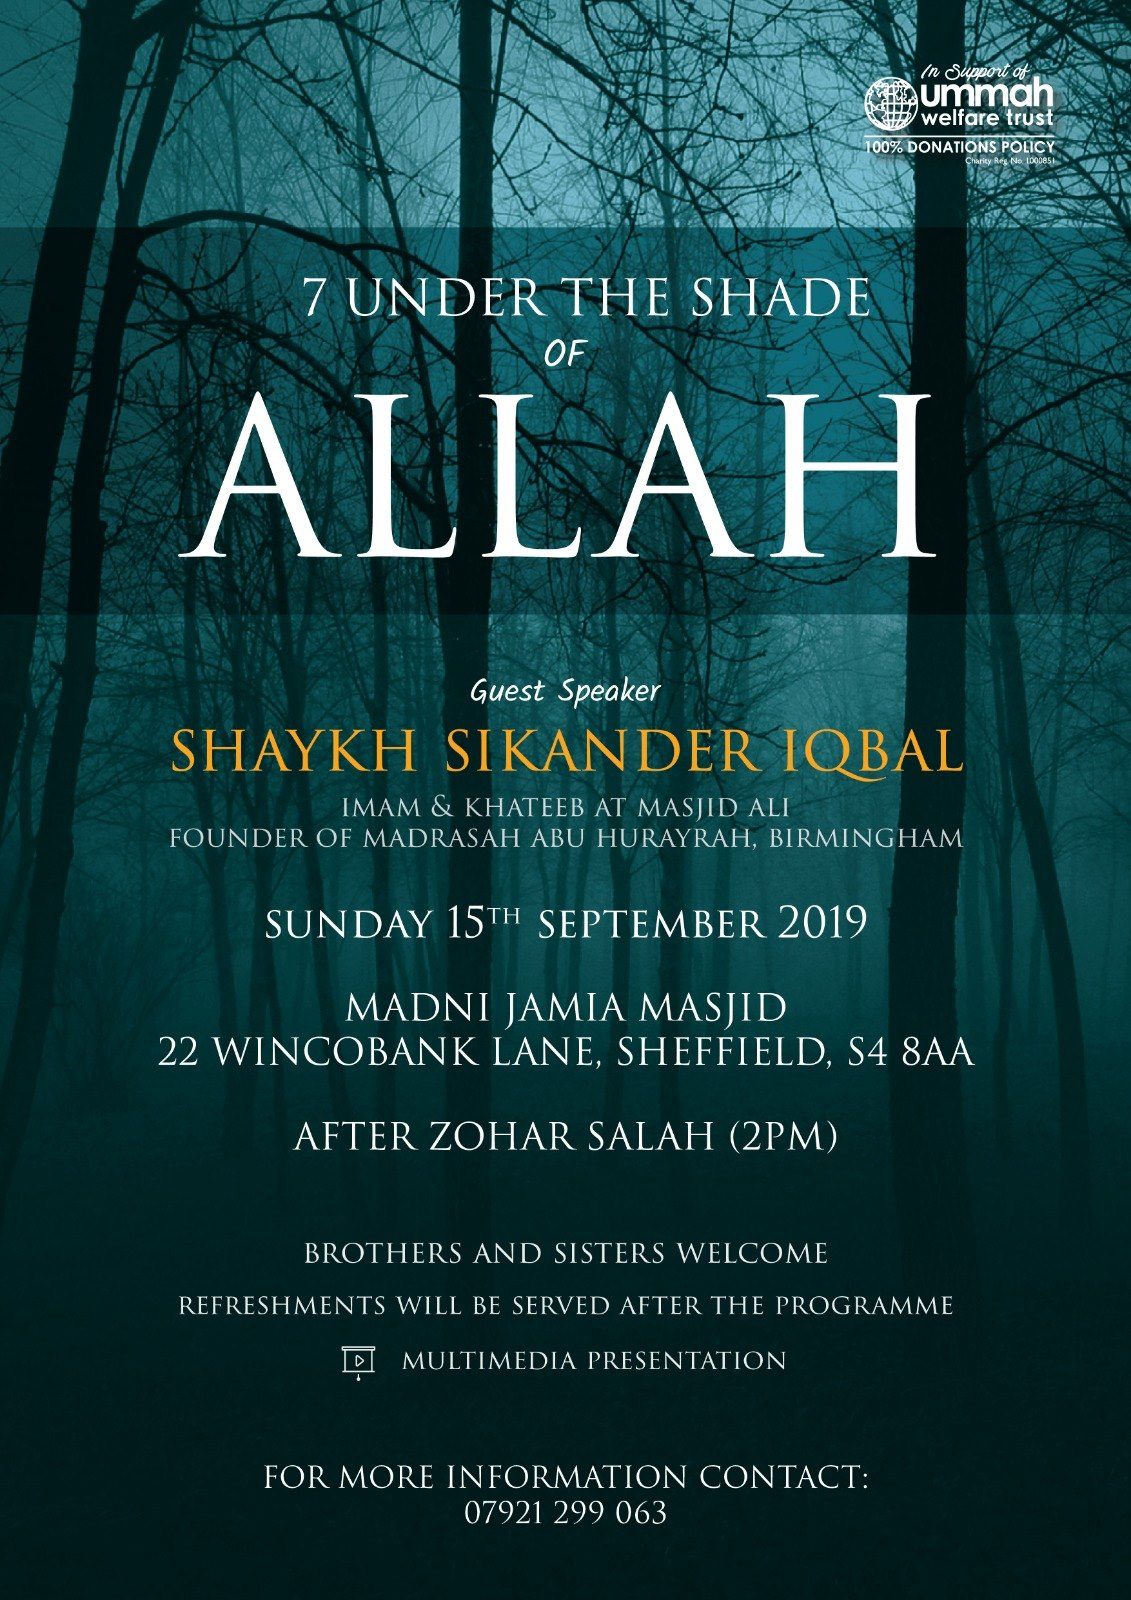 Islamic and Charity Events 2019 - uwt